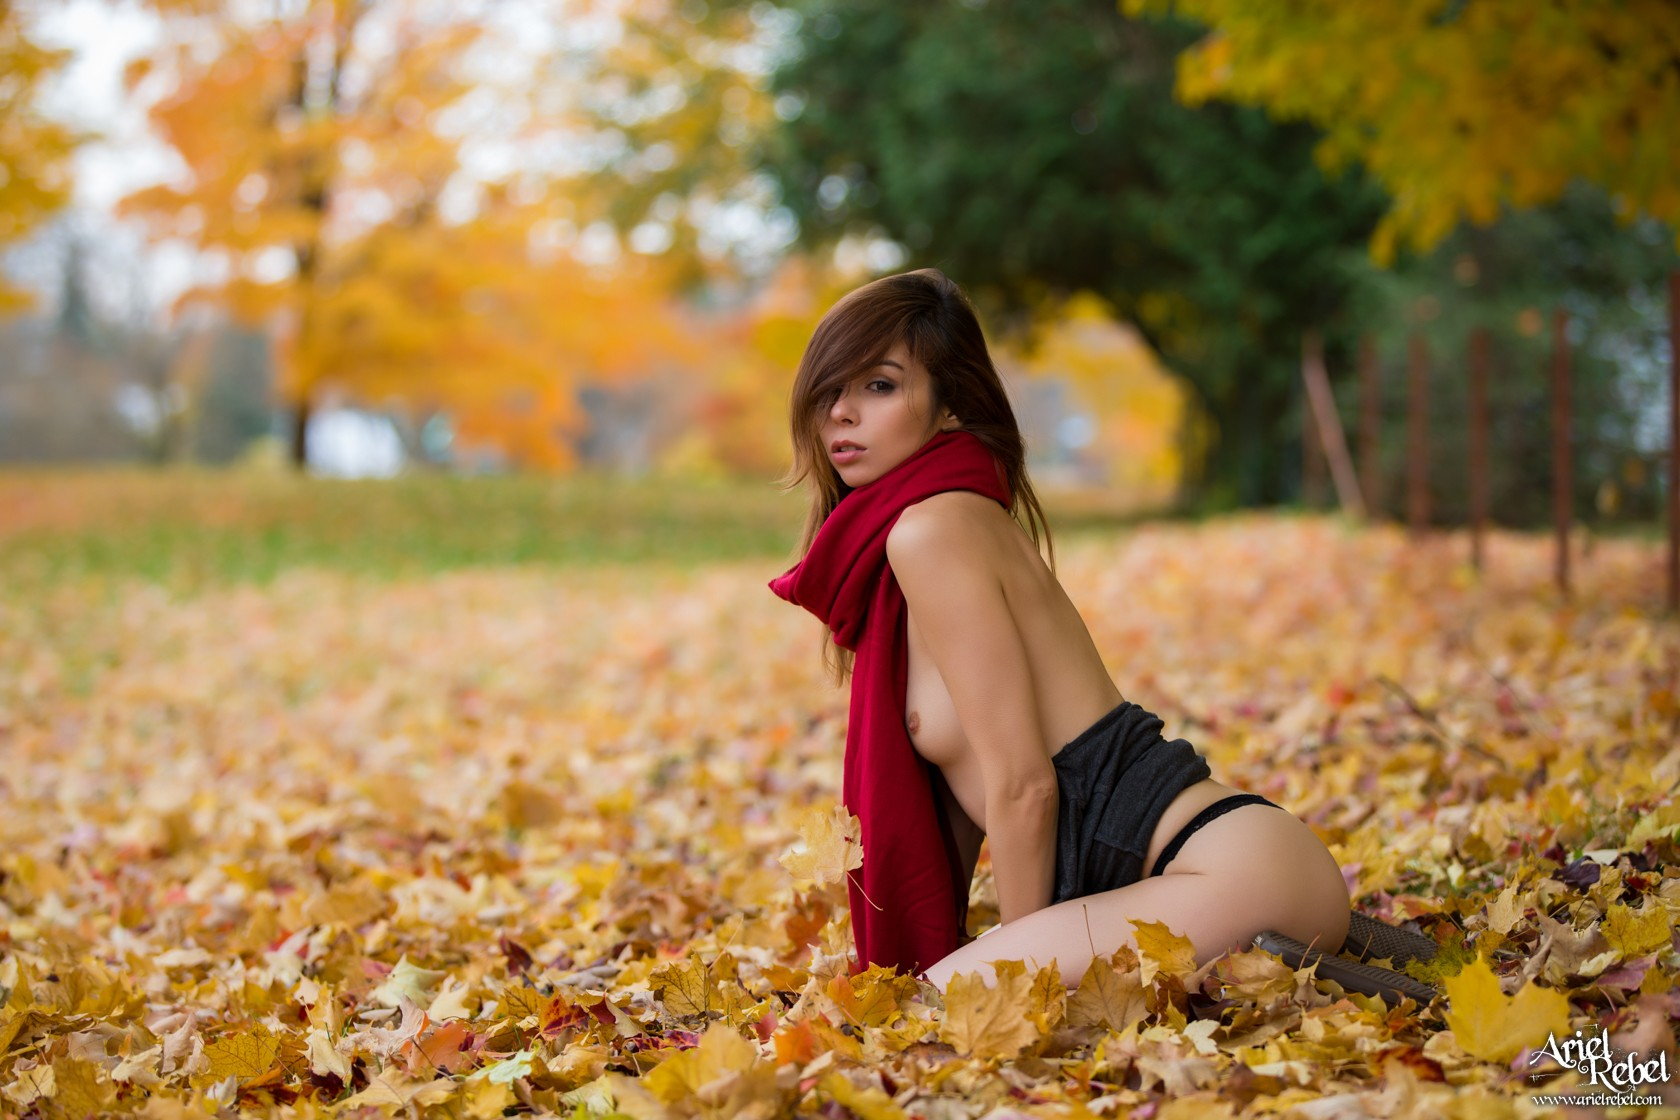 arielrebel_autumnleaves10